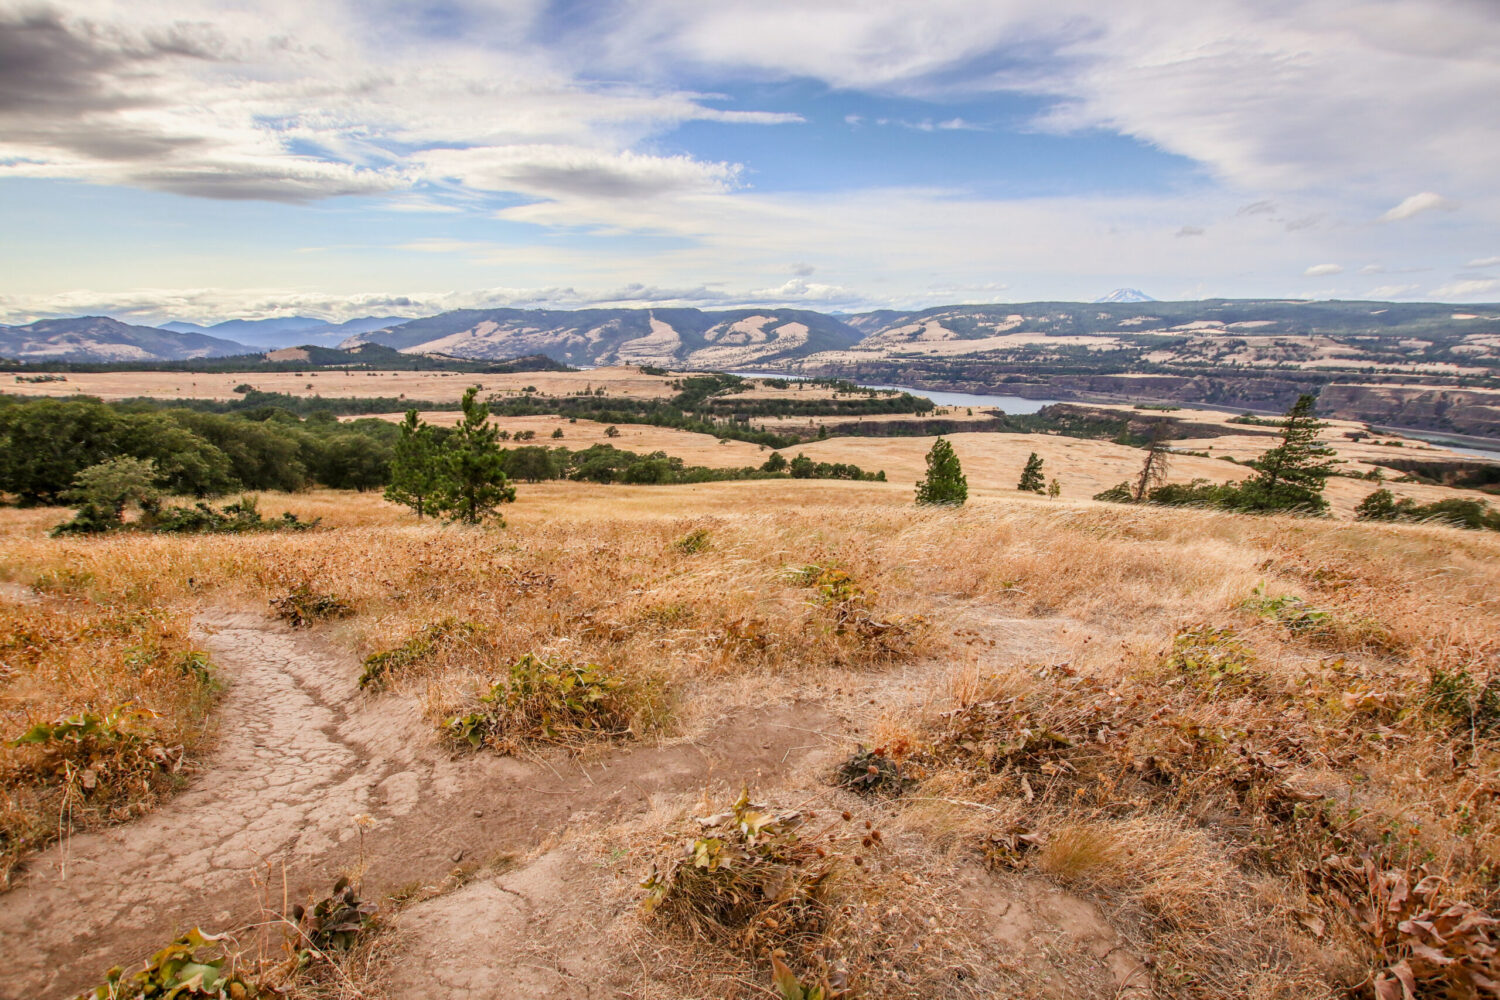 Rowena Crest viewpoint in Oregon